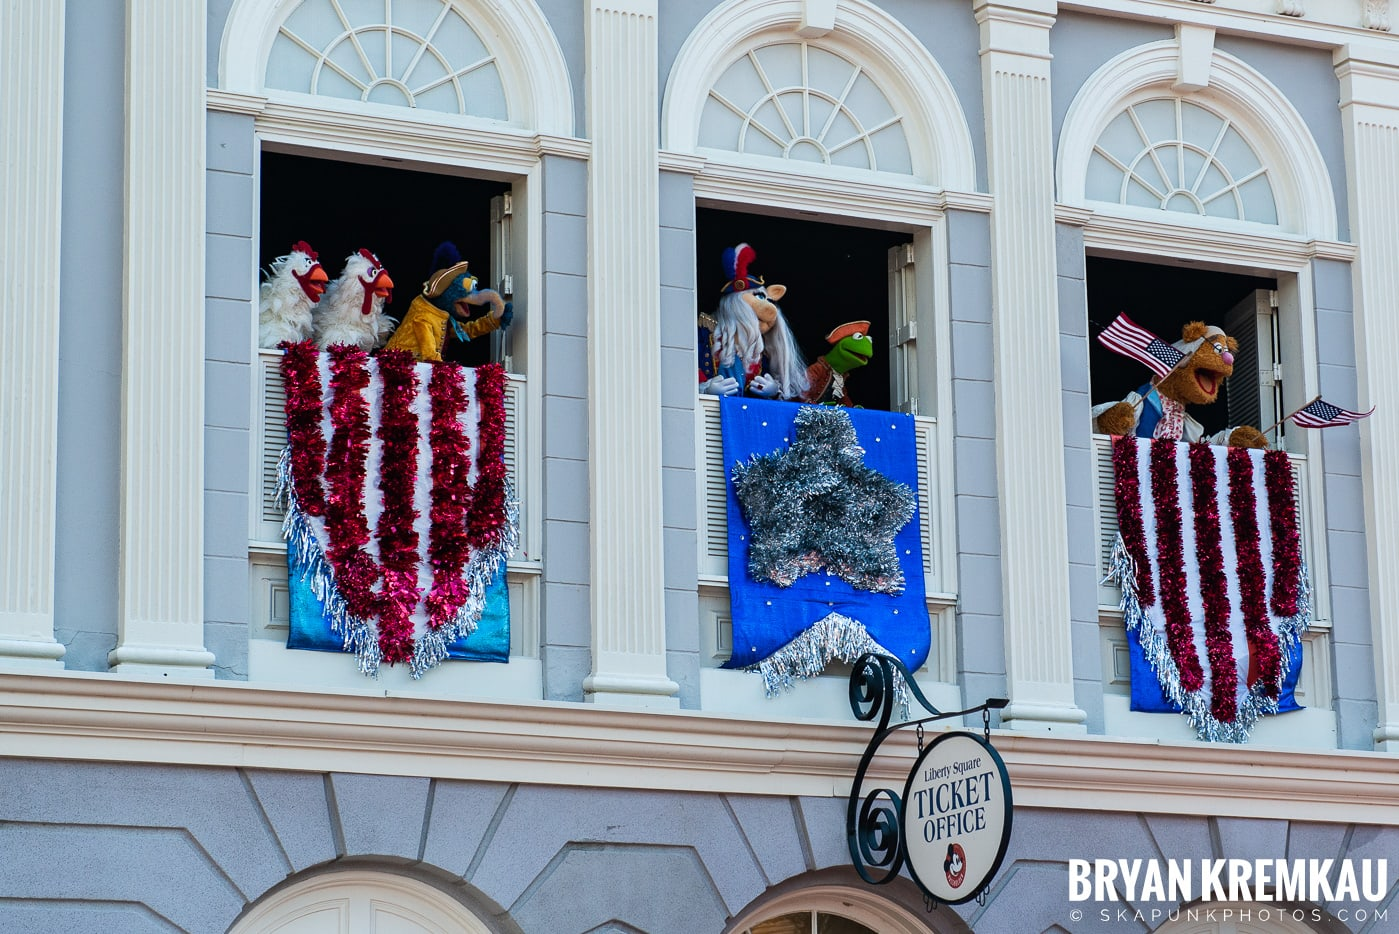 Walt Disney World Vacation: Days 1 & 2 (Disney Springs & Magic Kingdom, Epcot) September 29th - 30th 2019 (19)